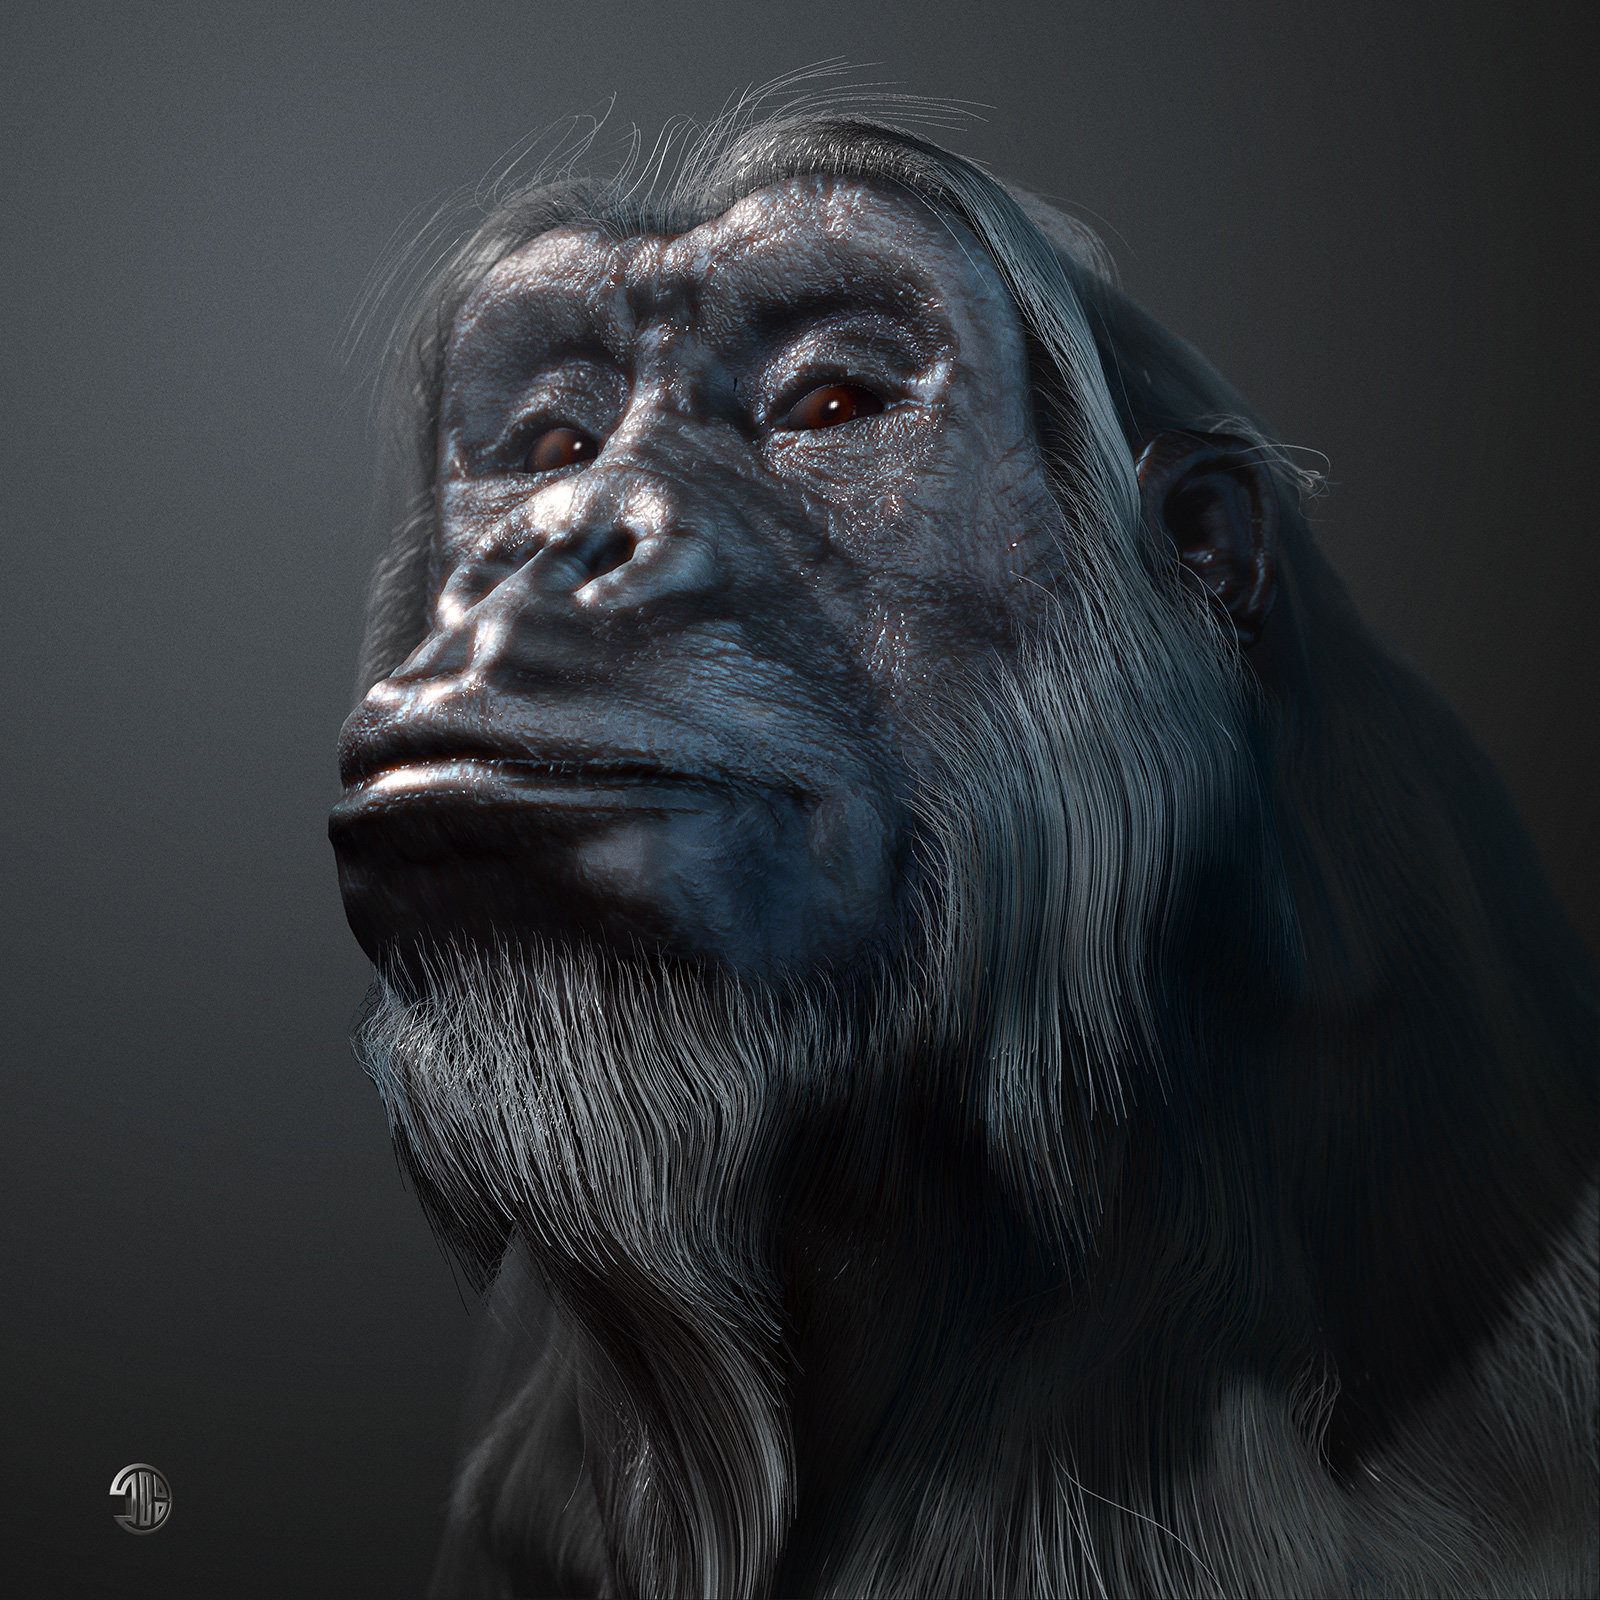 thierry-berengier-zbrush-render01